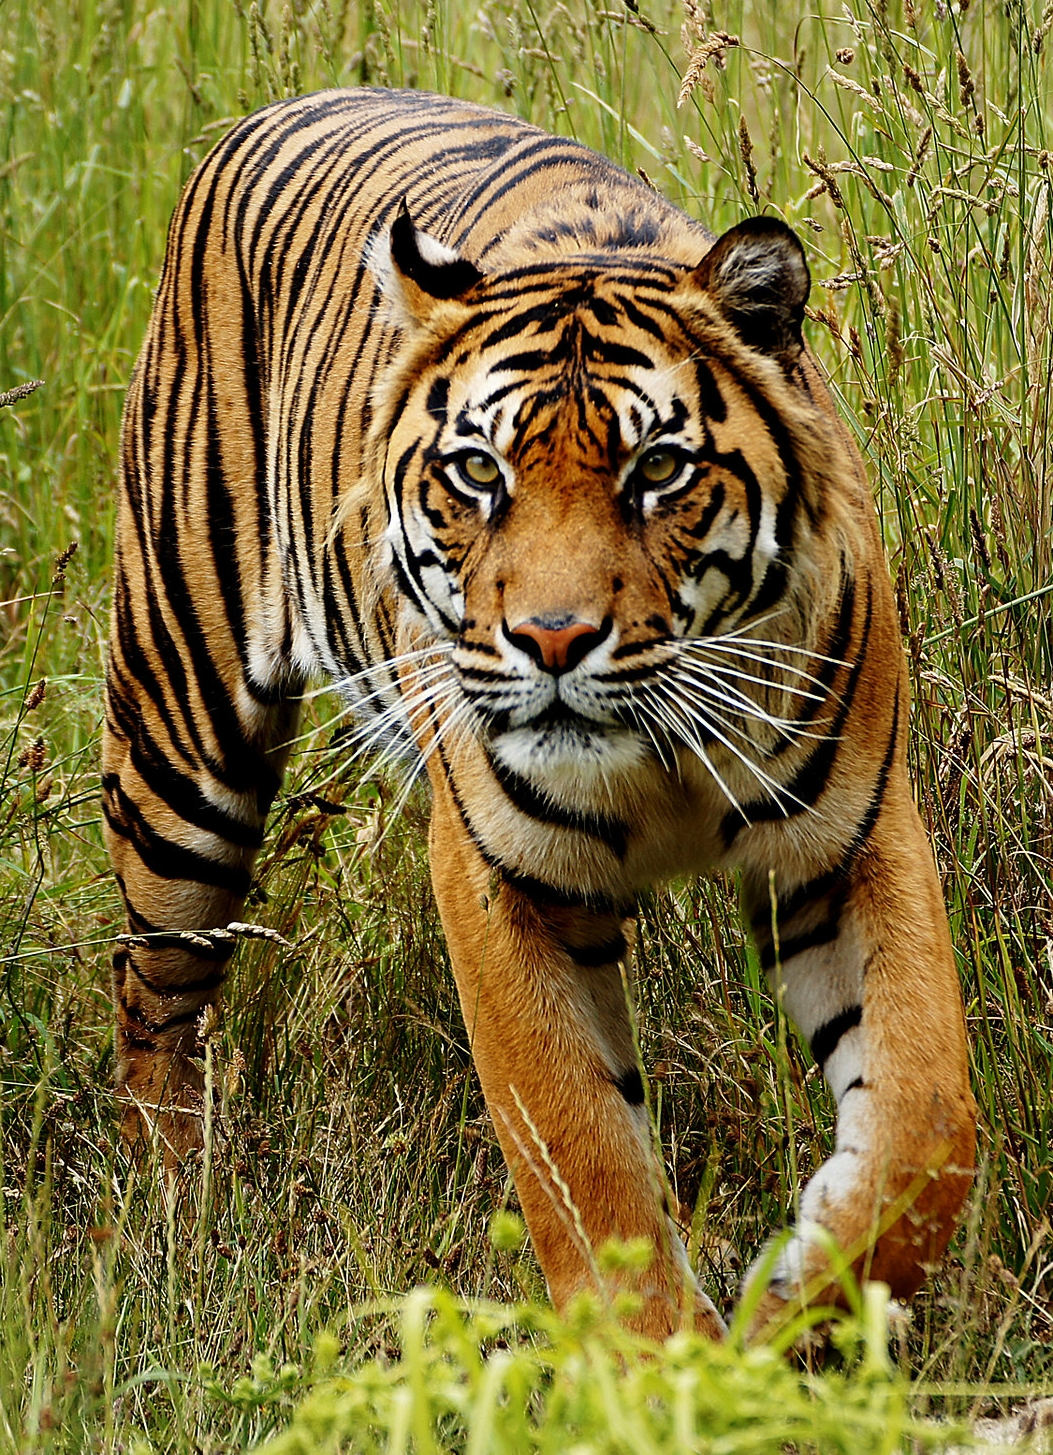 critically endangered sumatran tiger Panthera tigris sondaica